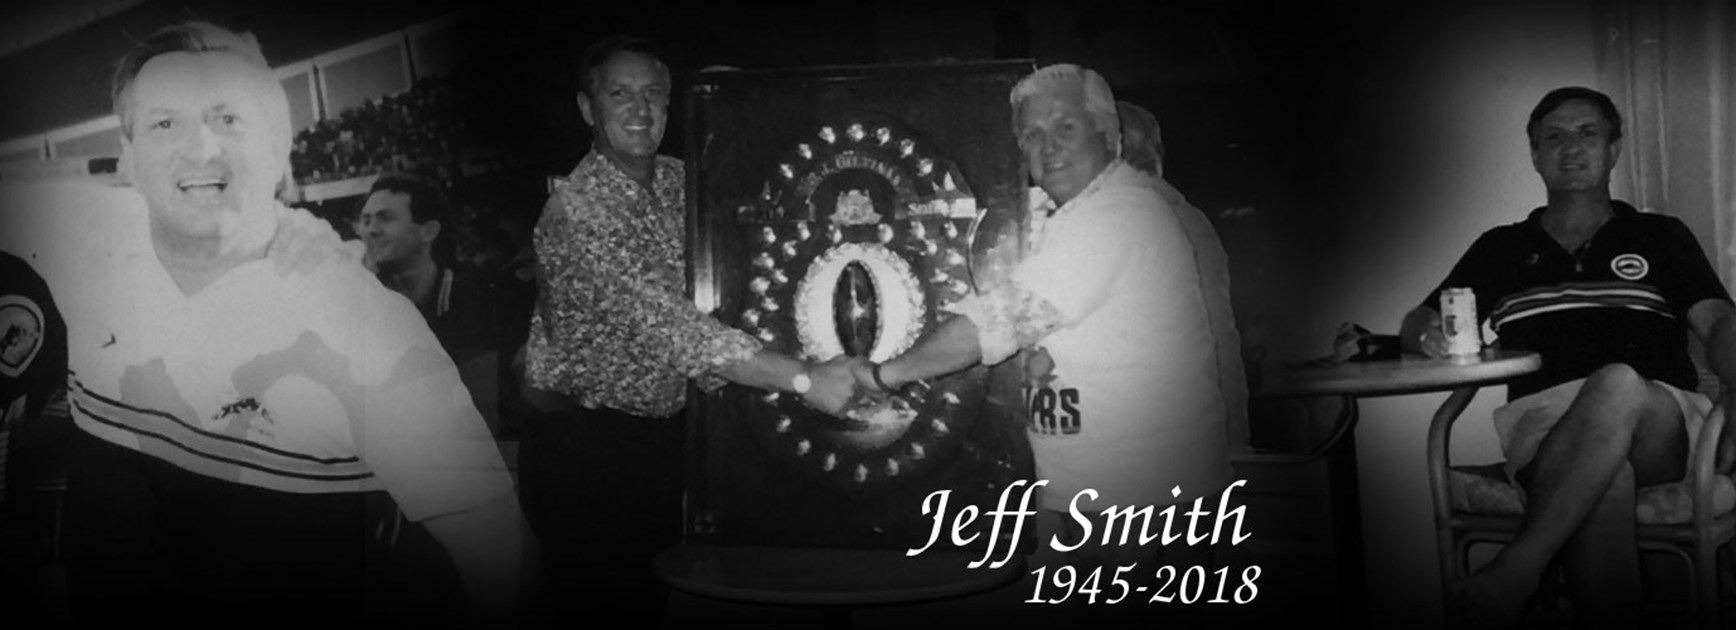 Vale Jeff Smith